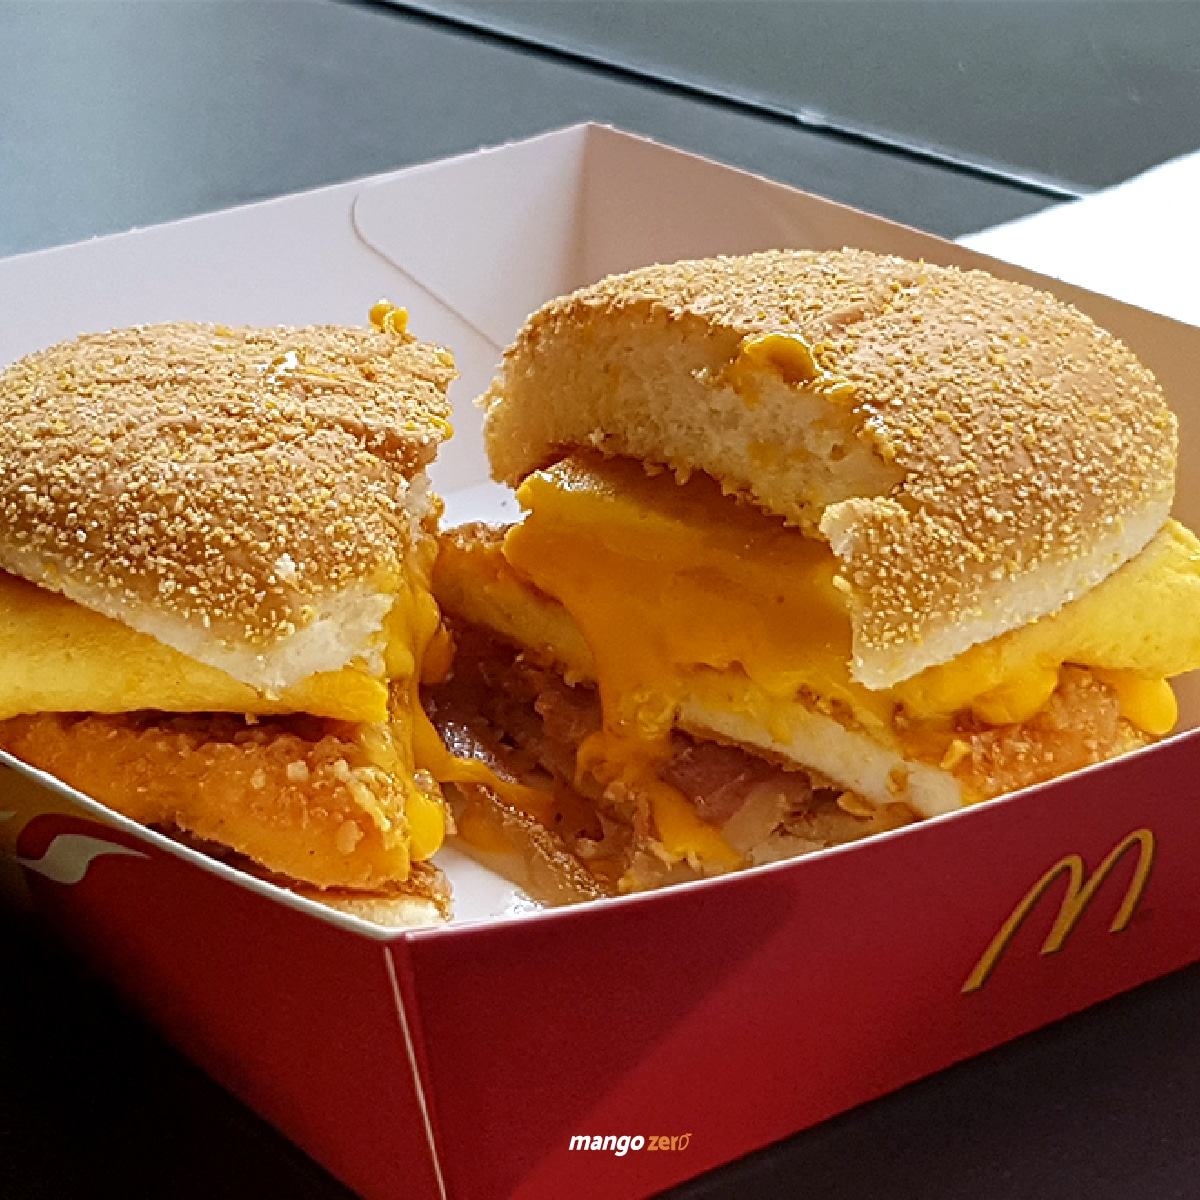 mcdonalds-cheesy-egg-bun-and-sweet-potato-desserts-07